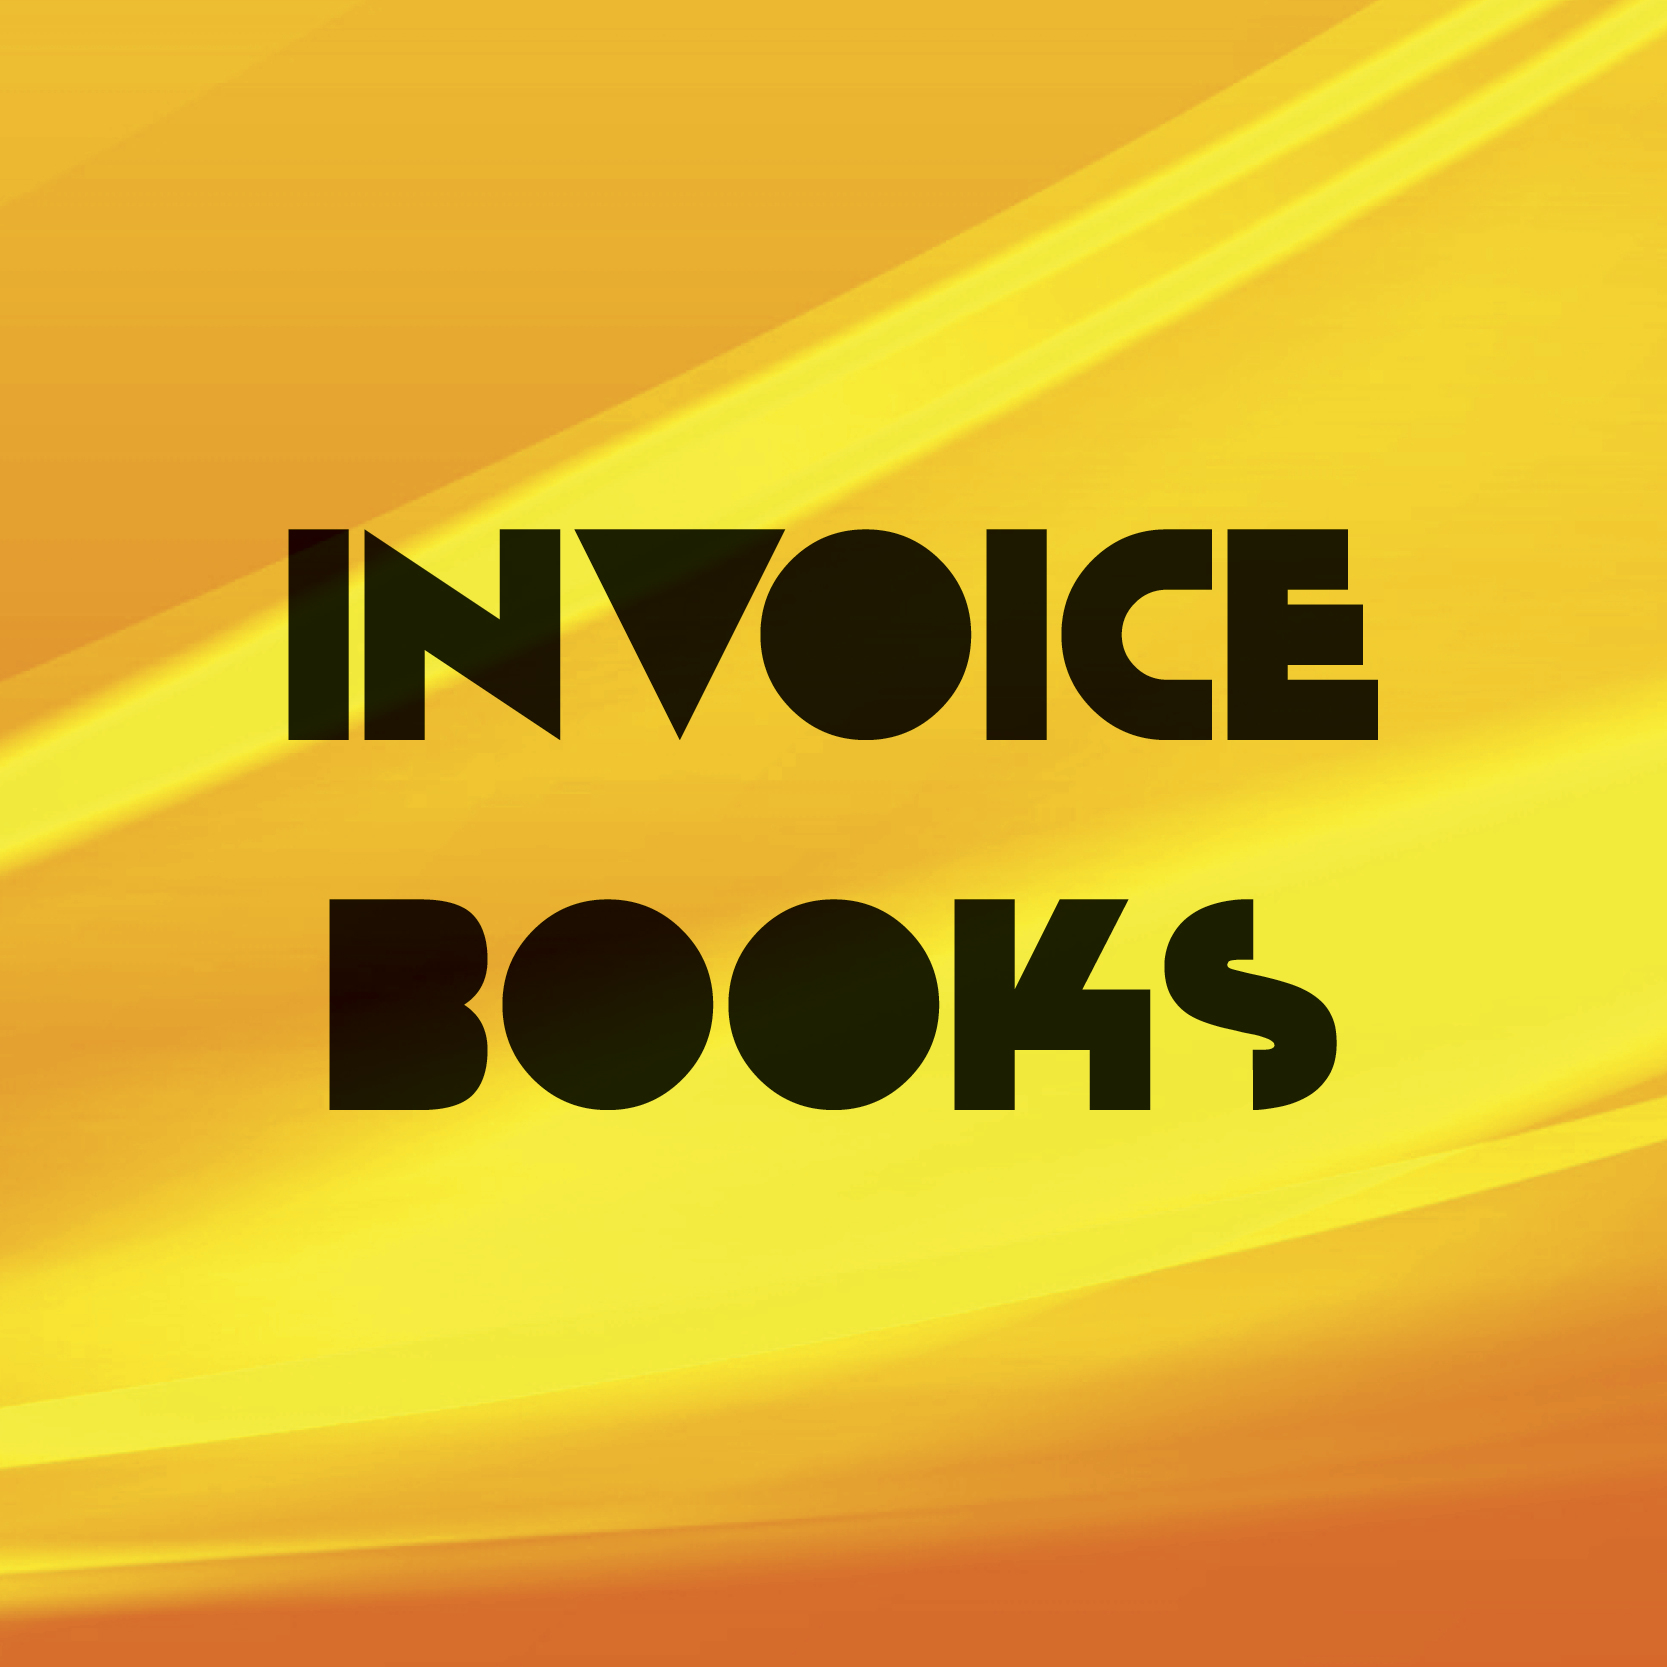 Invoice & Quote Books